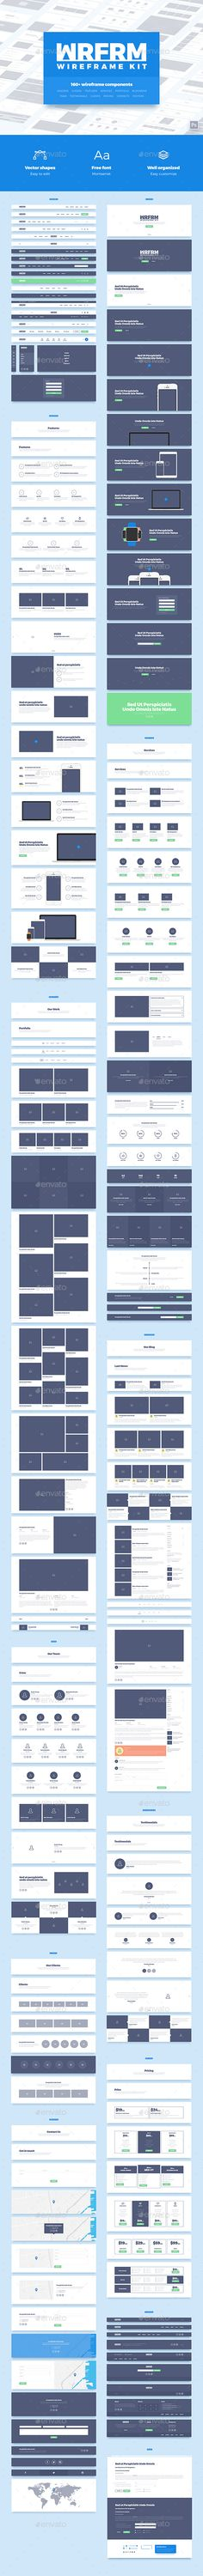 WRFRM – Wireframe Kit  #photoshop #psd #site • Click here to download ! http://graphicriver.net/item/wrfrm-wireframe-kit/15999673?ref=pxcr